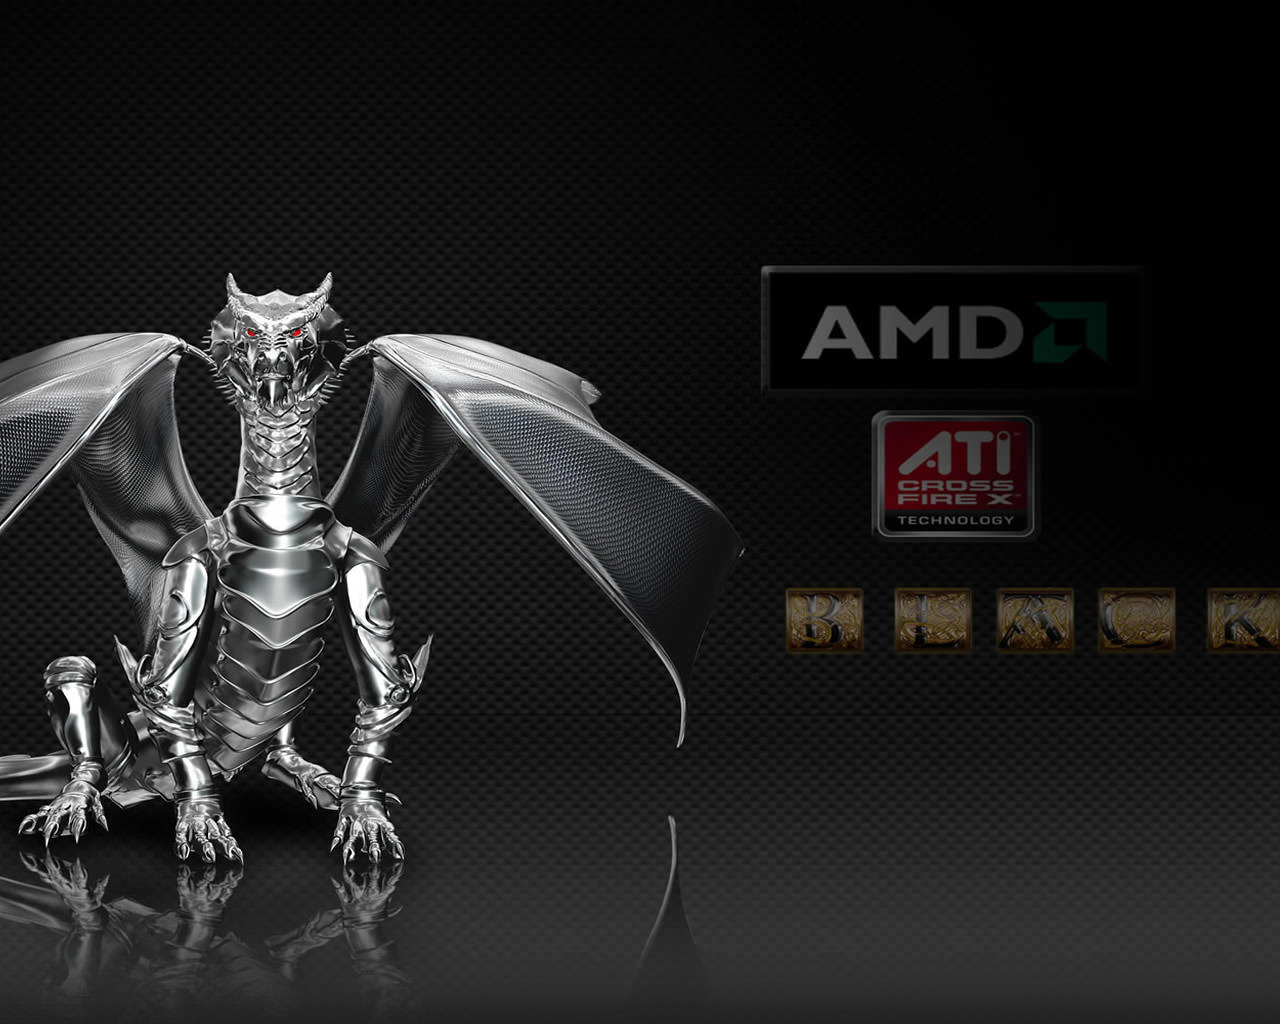 download amd dragon wallpapers - photo #7